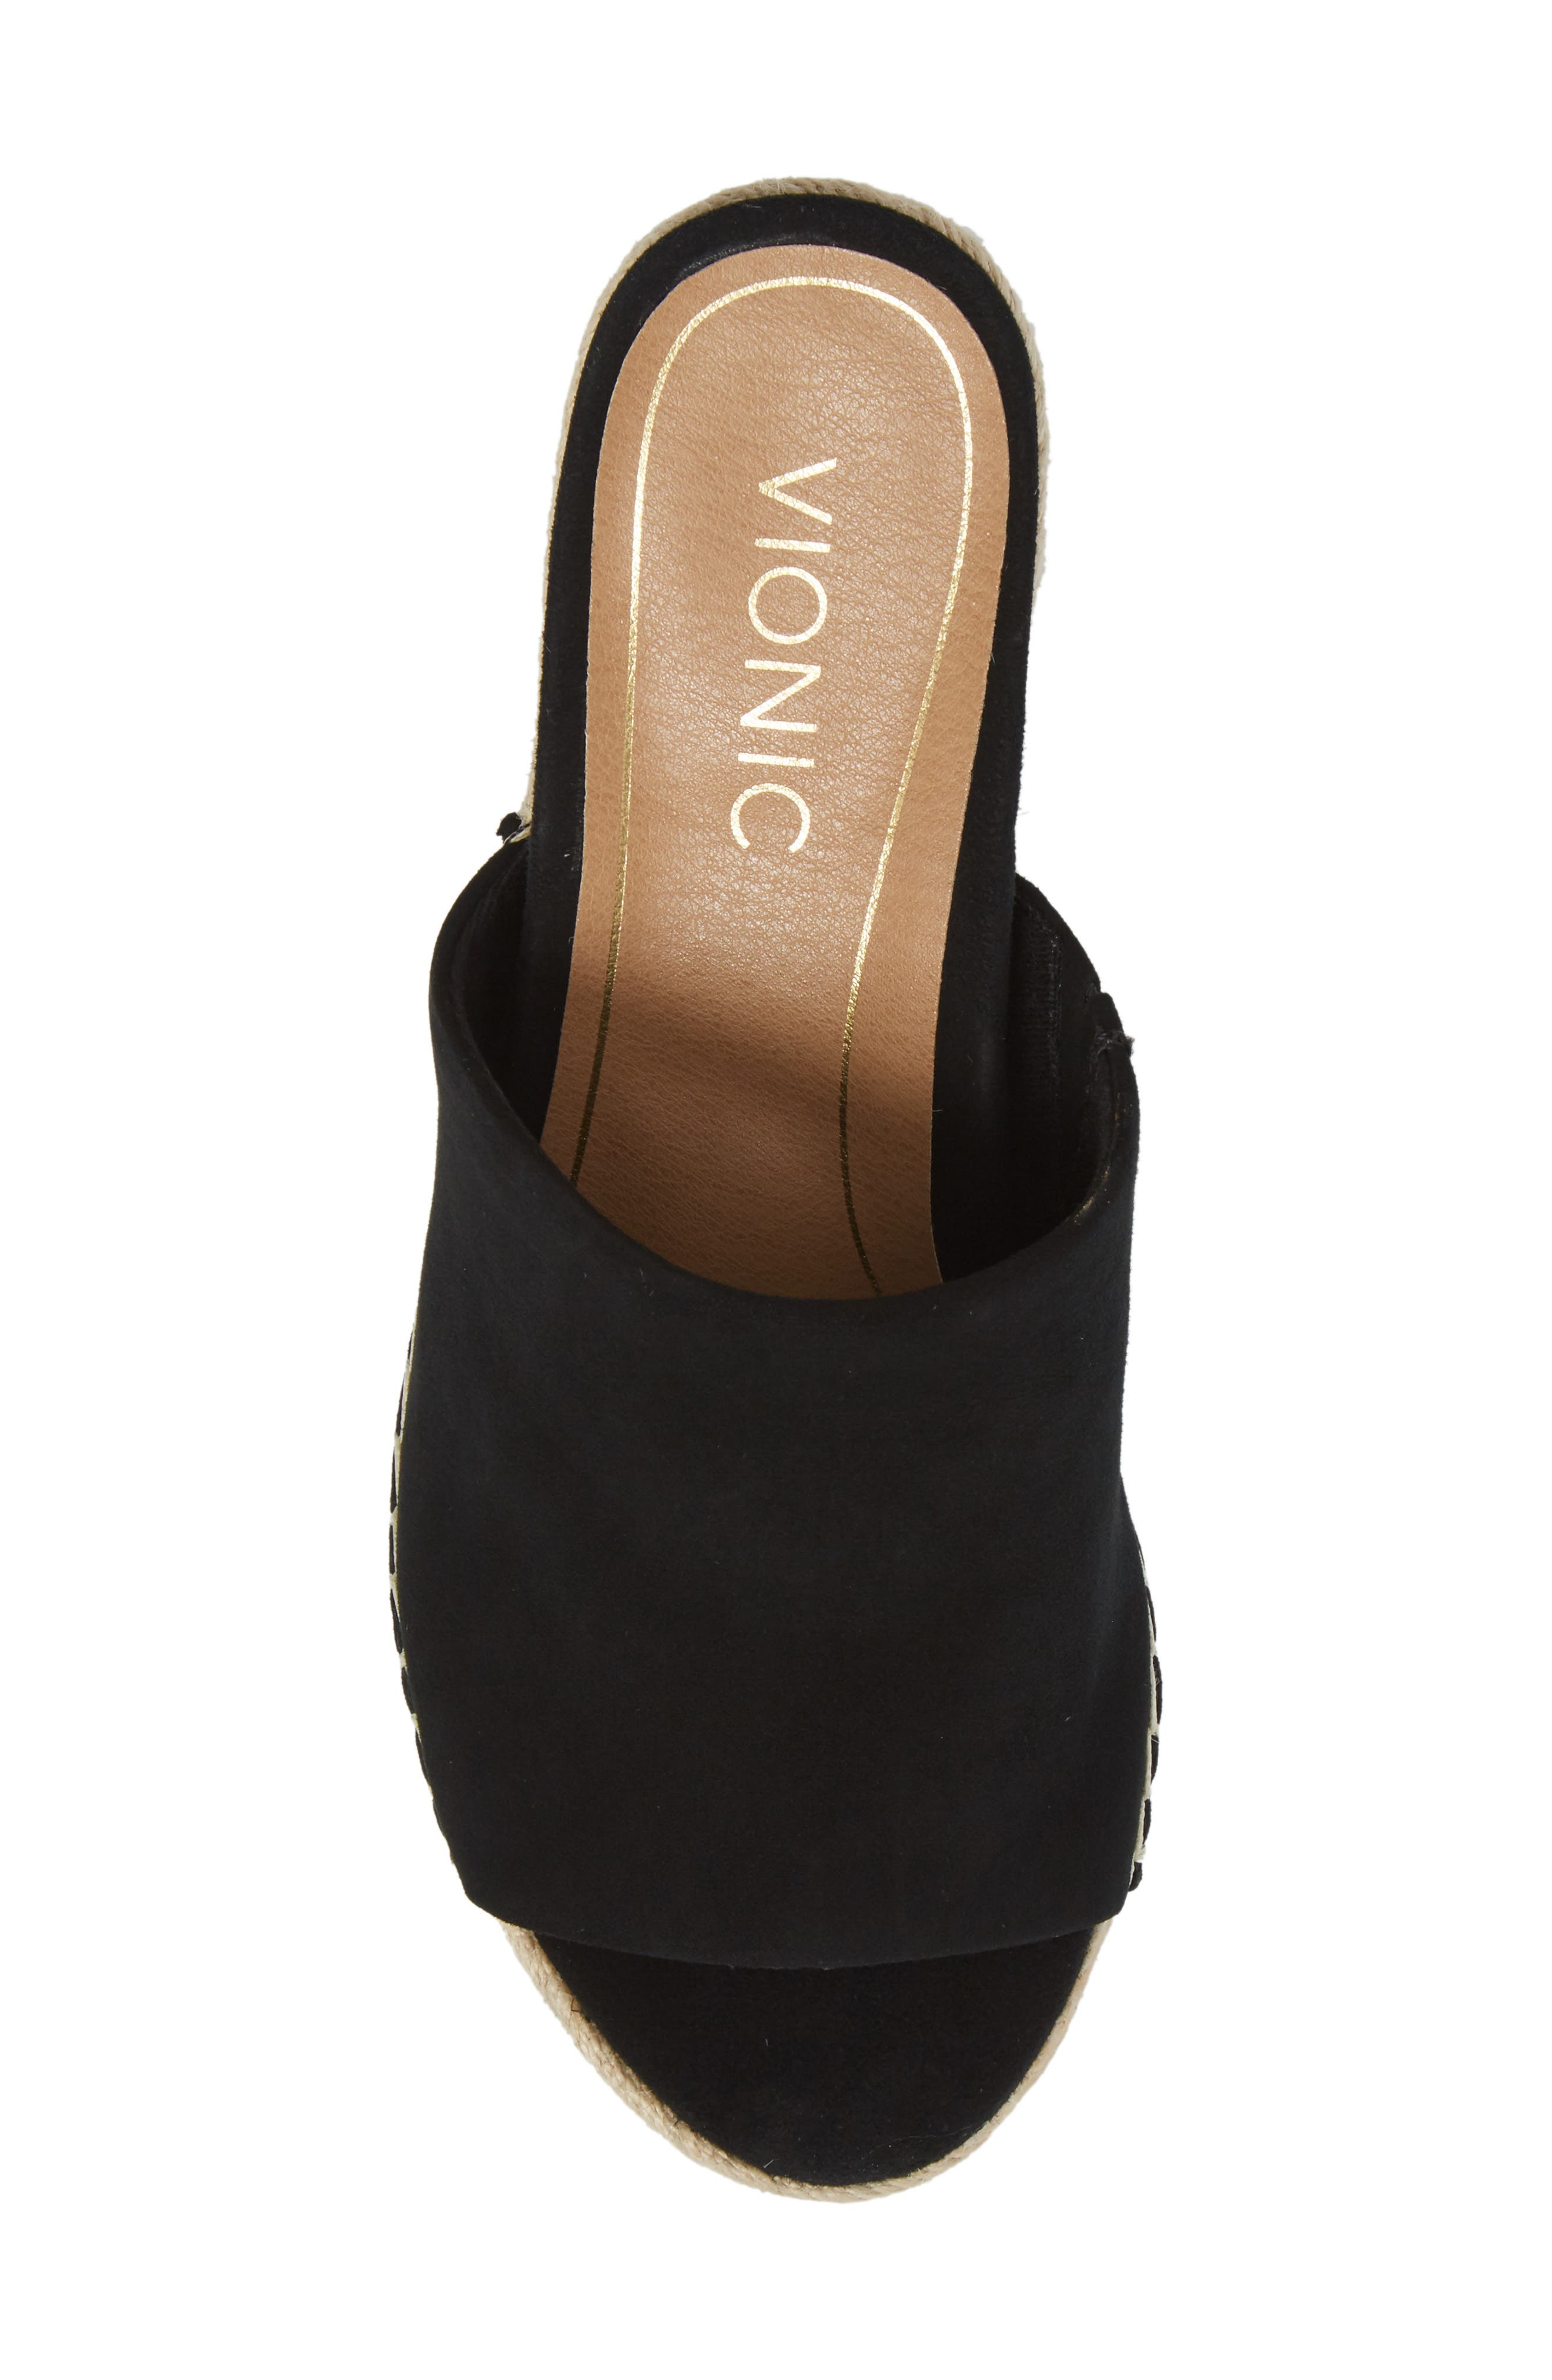 Kadyn Espadrille Wedge Sandal,                             Alternate thumbnail 5, color,                             BLACK SUEDE